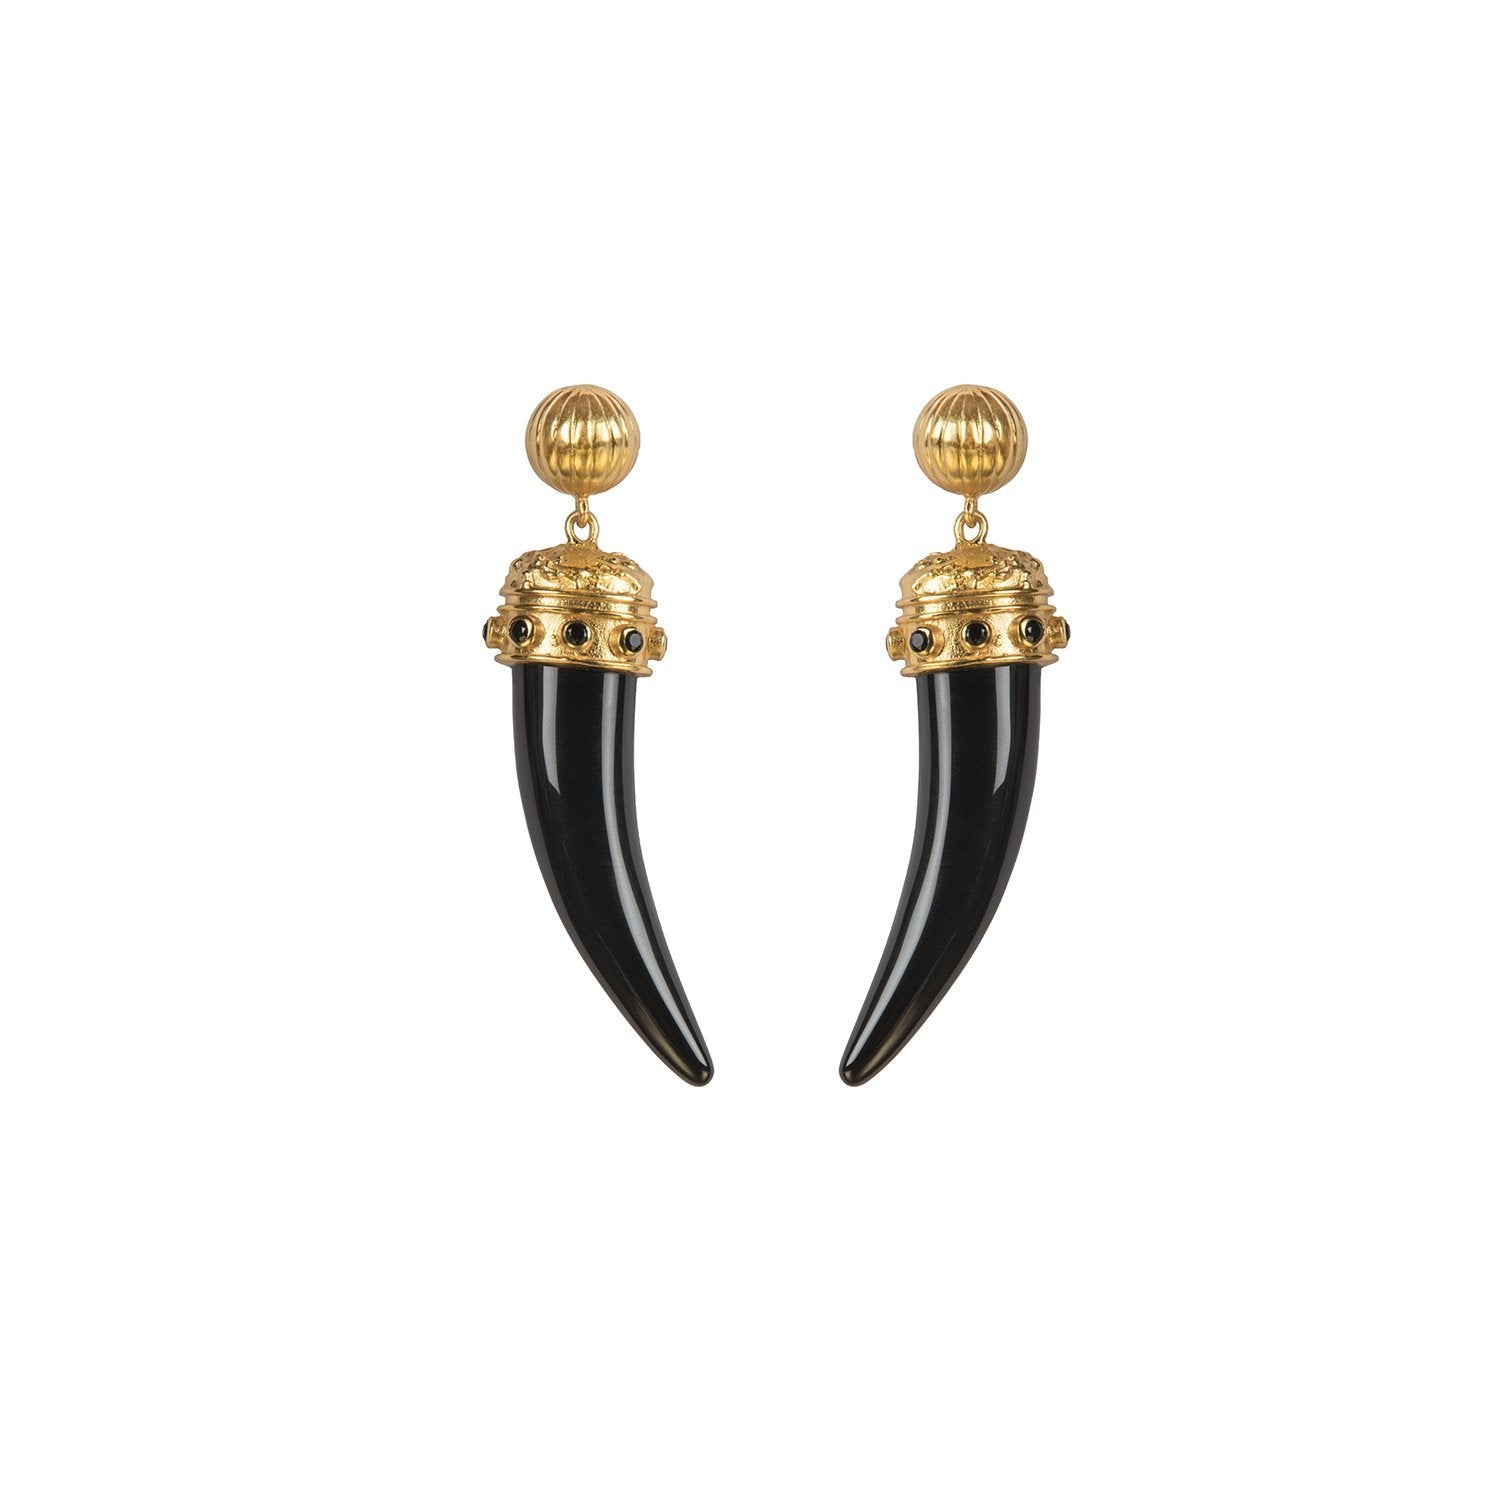 VALERE BLACK ONYX LIONESS EARRINGS MULTI